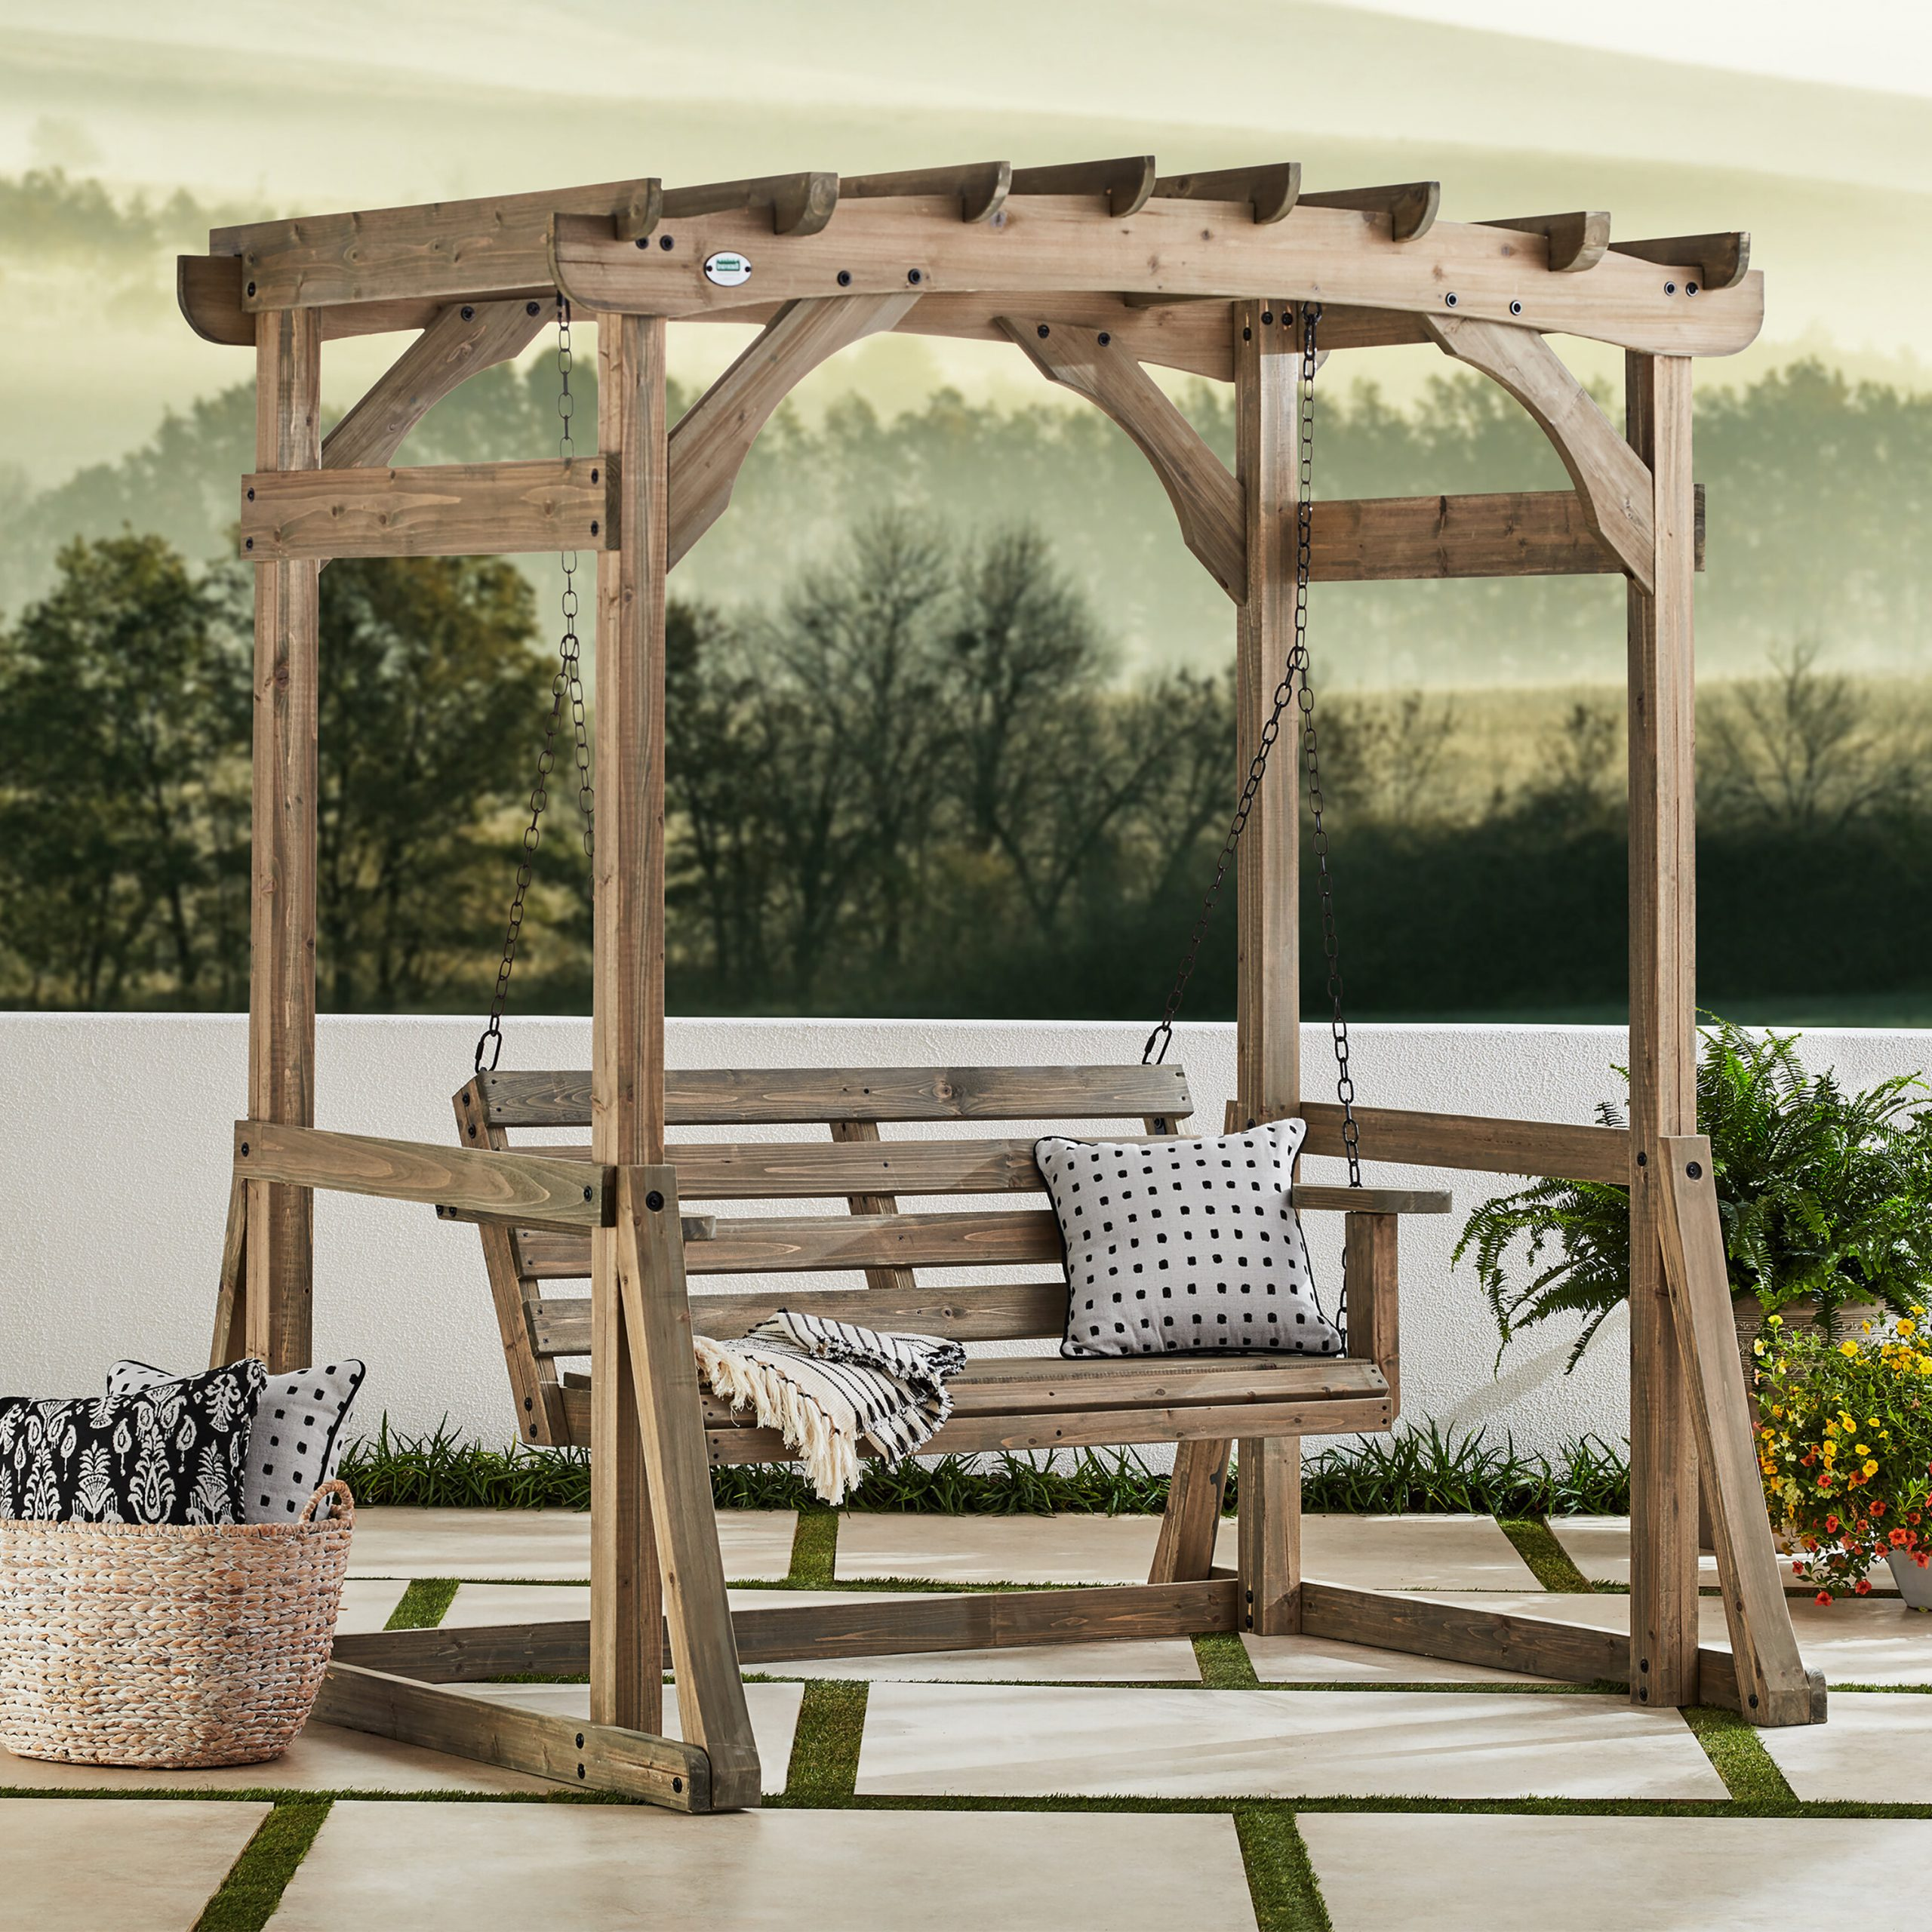 Odessa Pergola Porch Swing With Stand Intended For Famous Pergola Porch Swings With Stand (View 2 of 25)